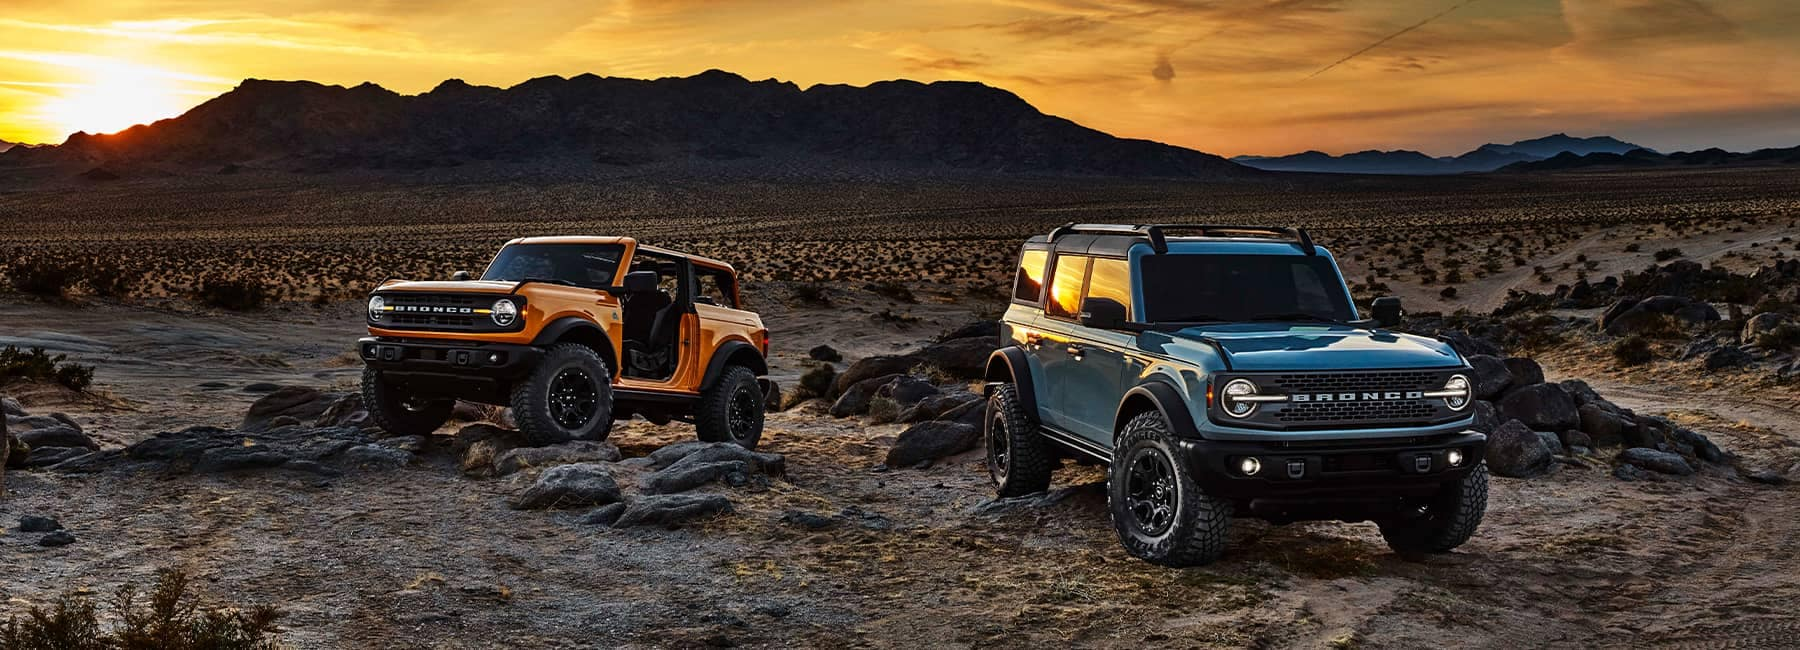 2021 Ford Broncos in the desert at sunset